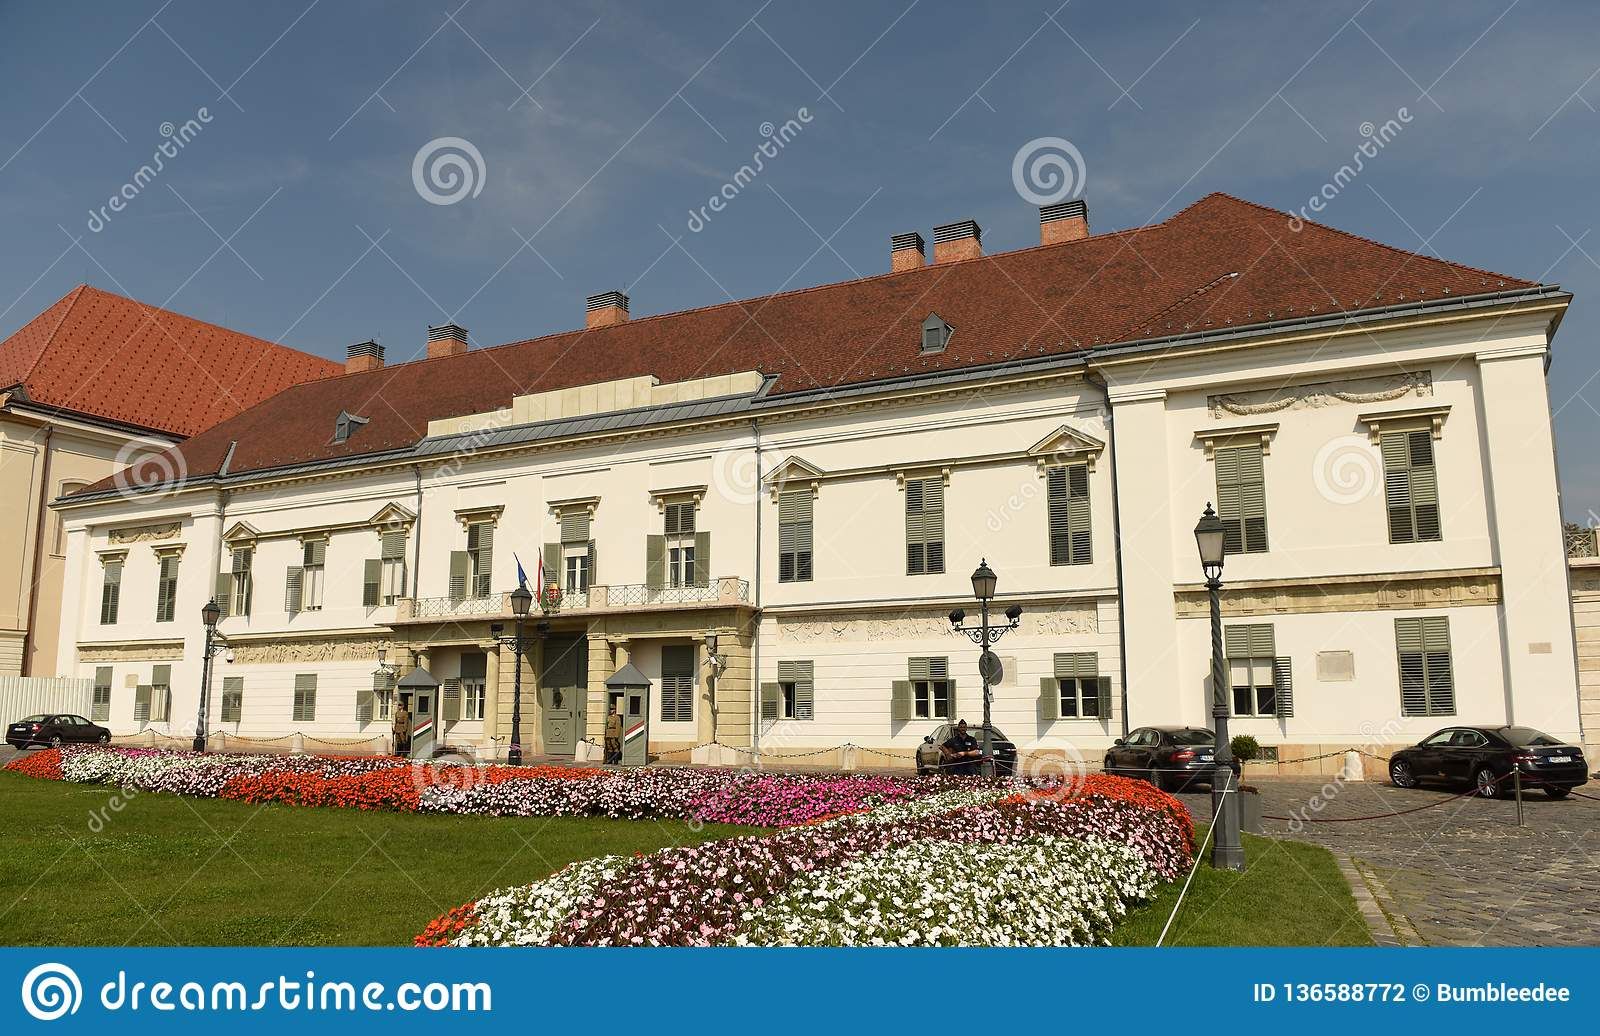 Budapest, Hungary - August 30, 2018: Sándor Palace Sandor-palota is the official residence of the President of Hungary, and the